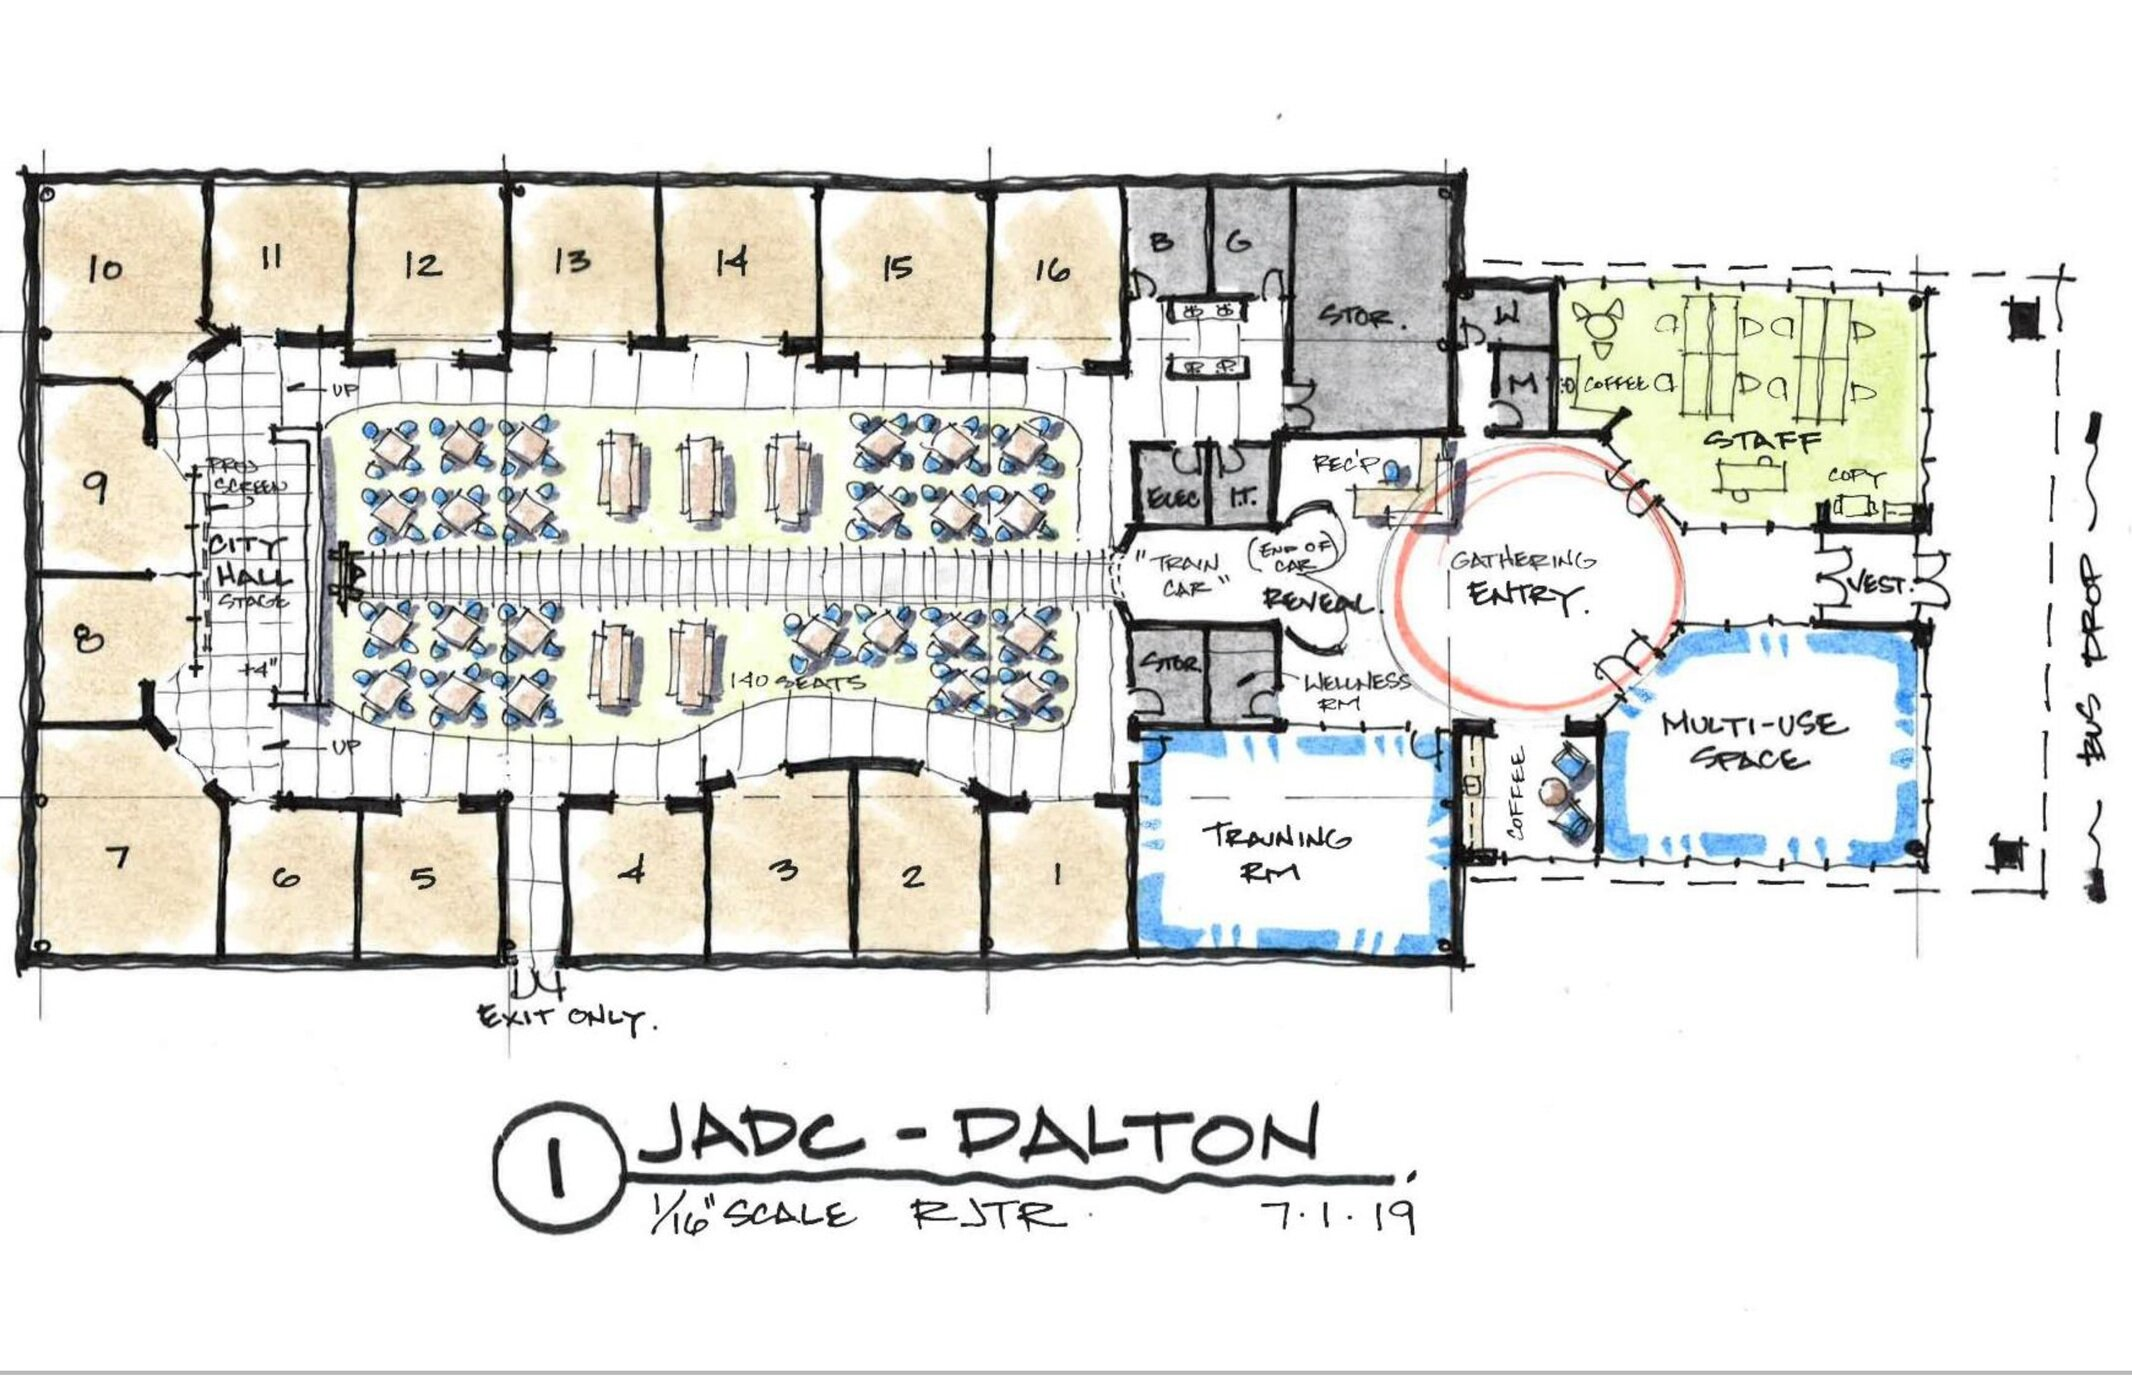 Floor plan for the JA Discovery Center of Greater Dalton